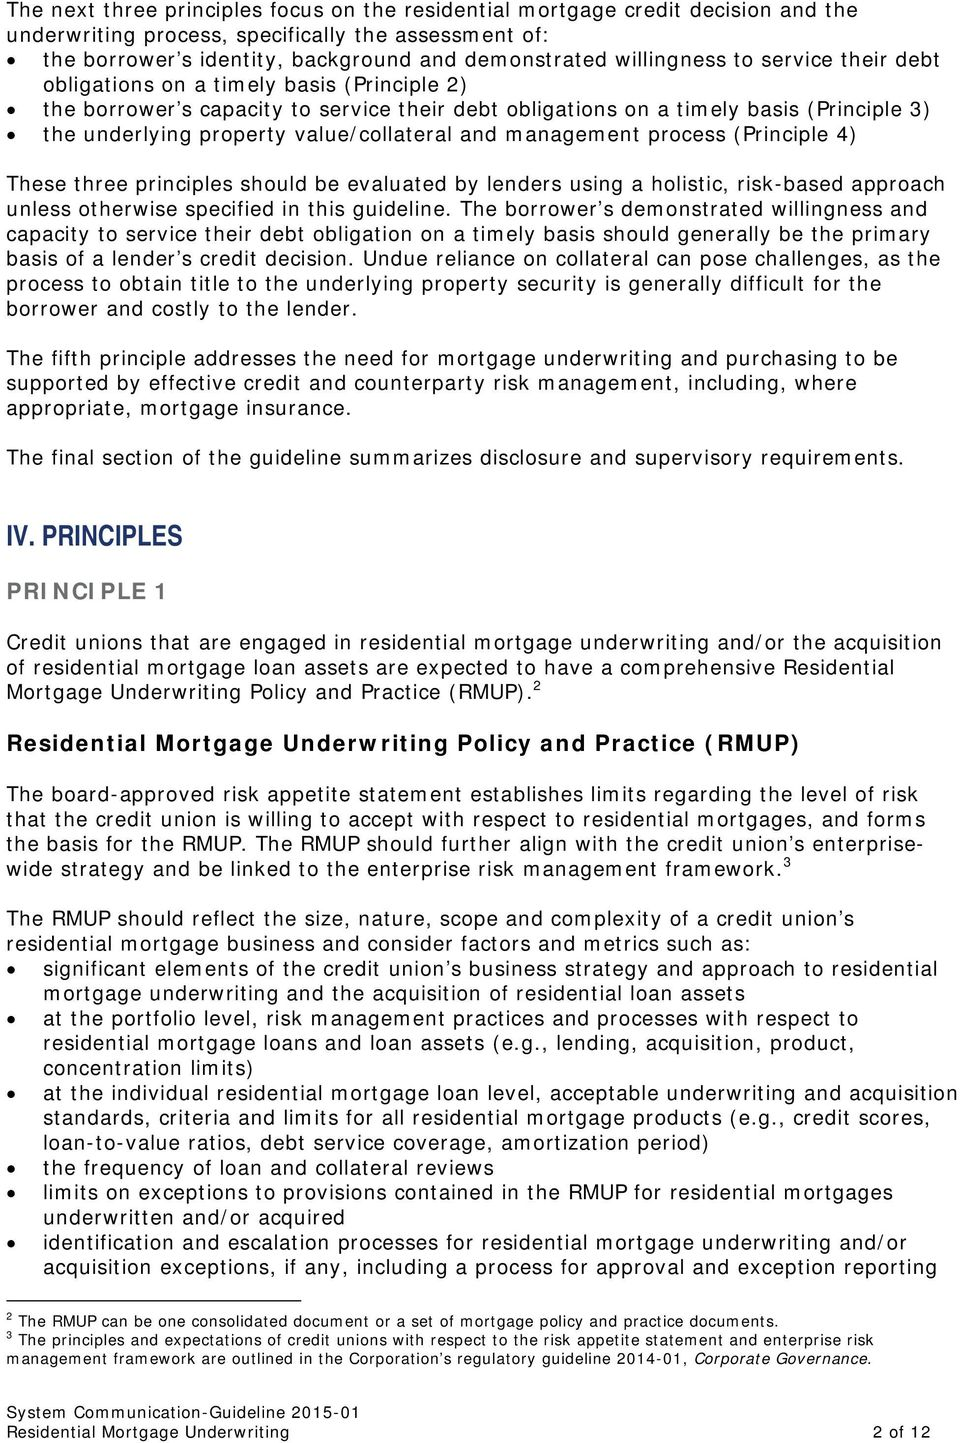 value/collateral and management process (Principle 4) These three principles should be evaluated by lenders using a holistic, risk-based approach unless otherwise specified in this guideline.